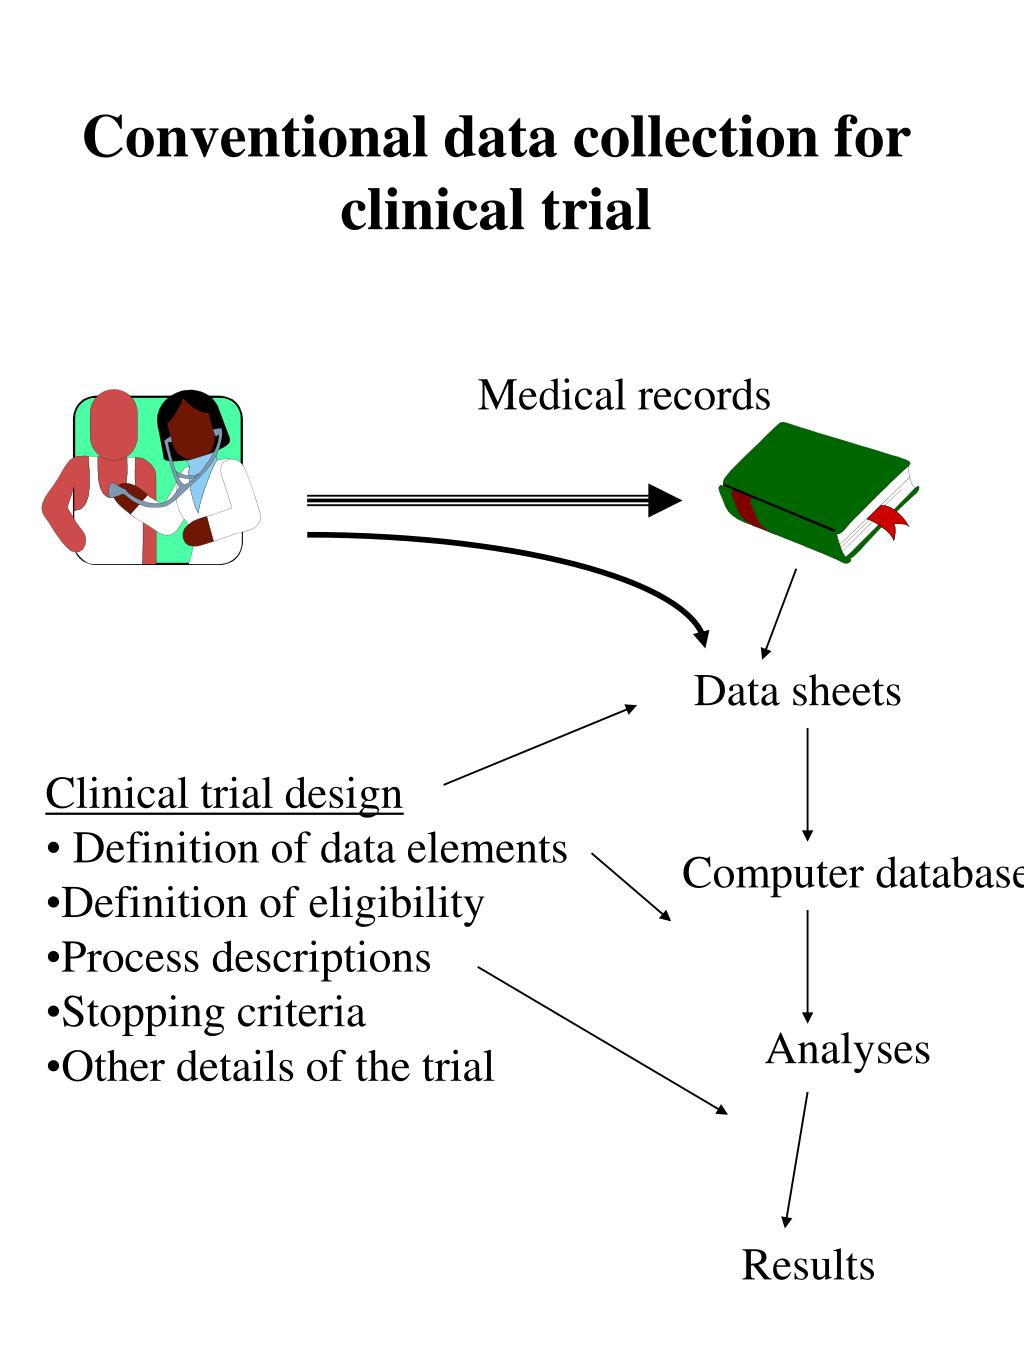 Conventional data collection for clinical trial